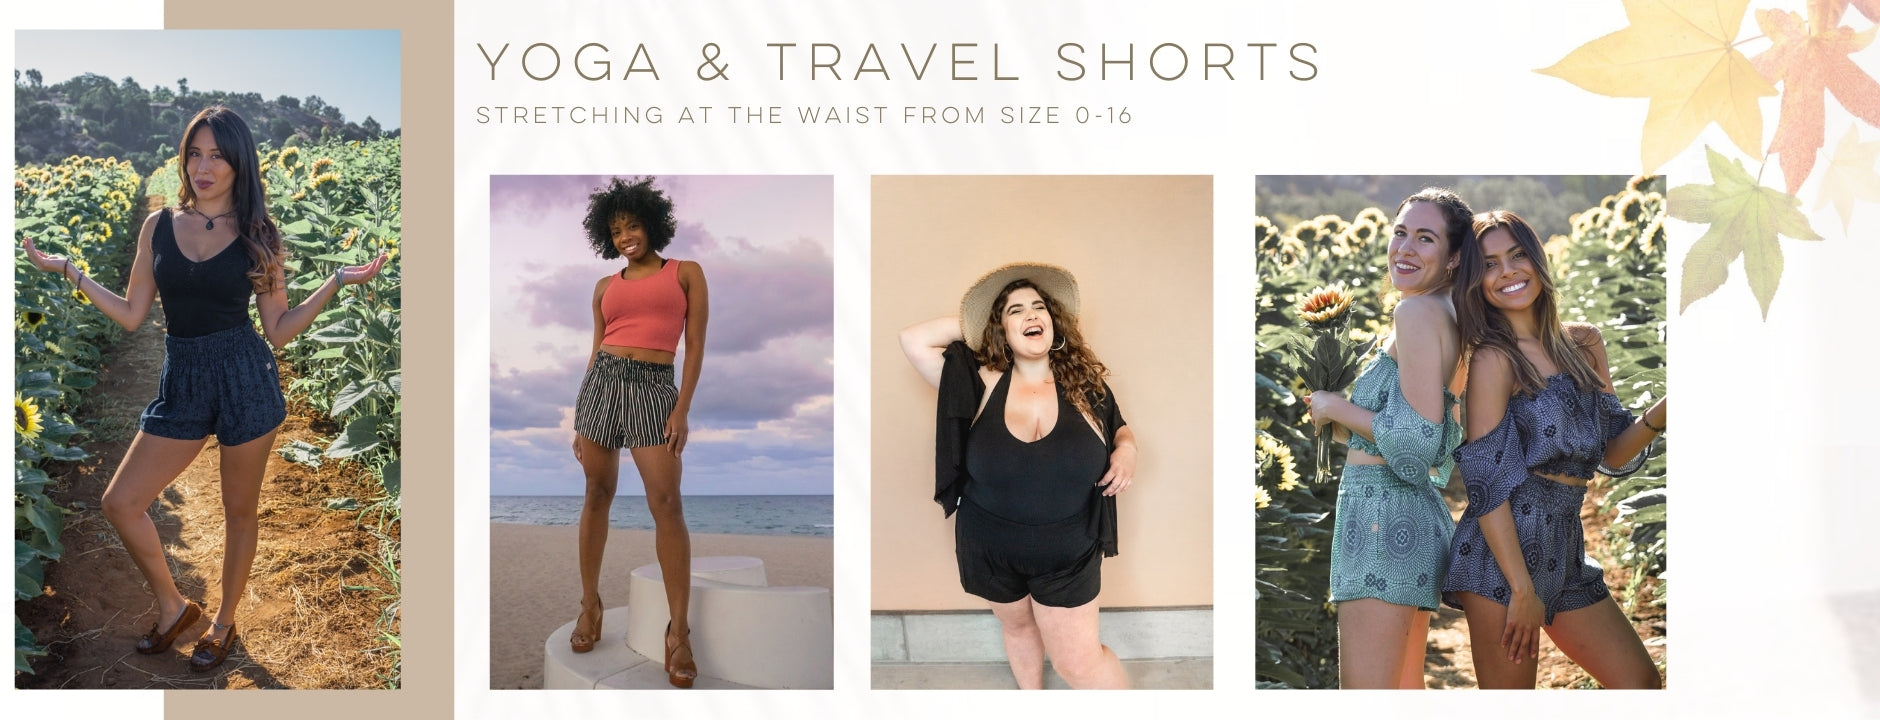 PIYOGA - Shorts Size 0-12 & 12-16 - Tall, Petite, Large, Plus Size, Loose, Flowy, Lightweight, Soft, Pockets, High Waisted, Beach, Yoga, Travel, Vacation, Autumn, Loungwear